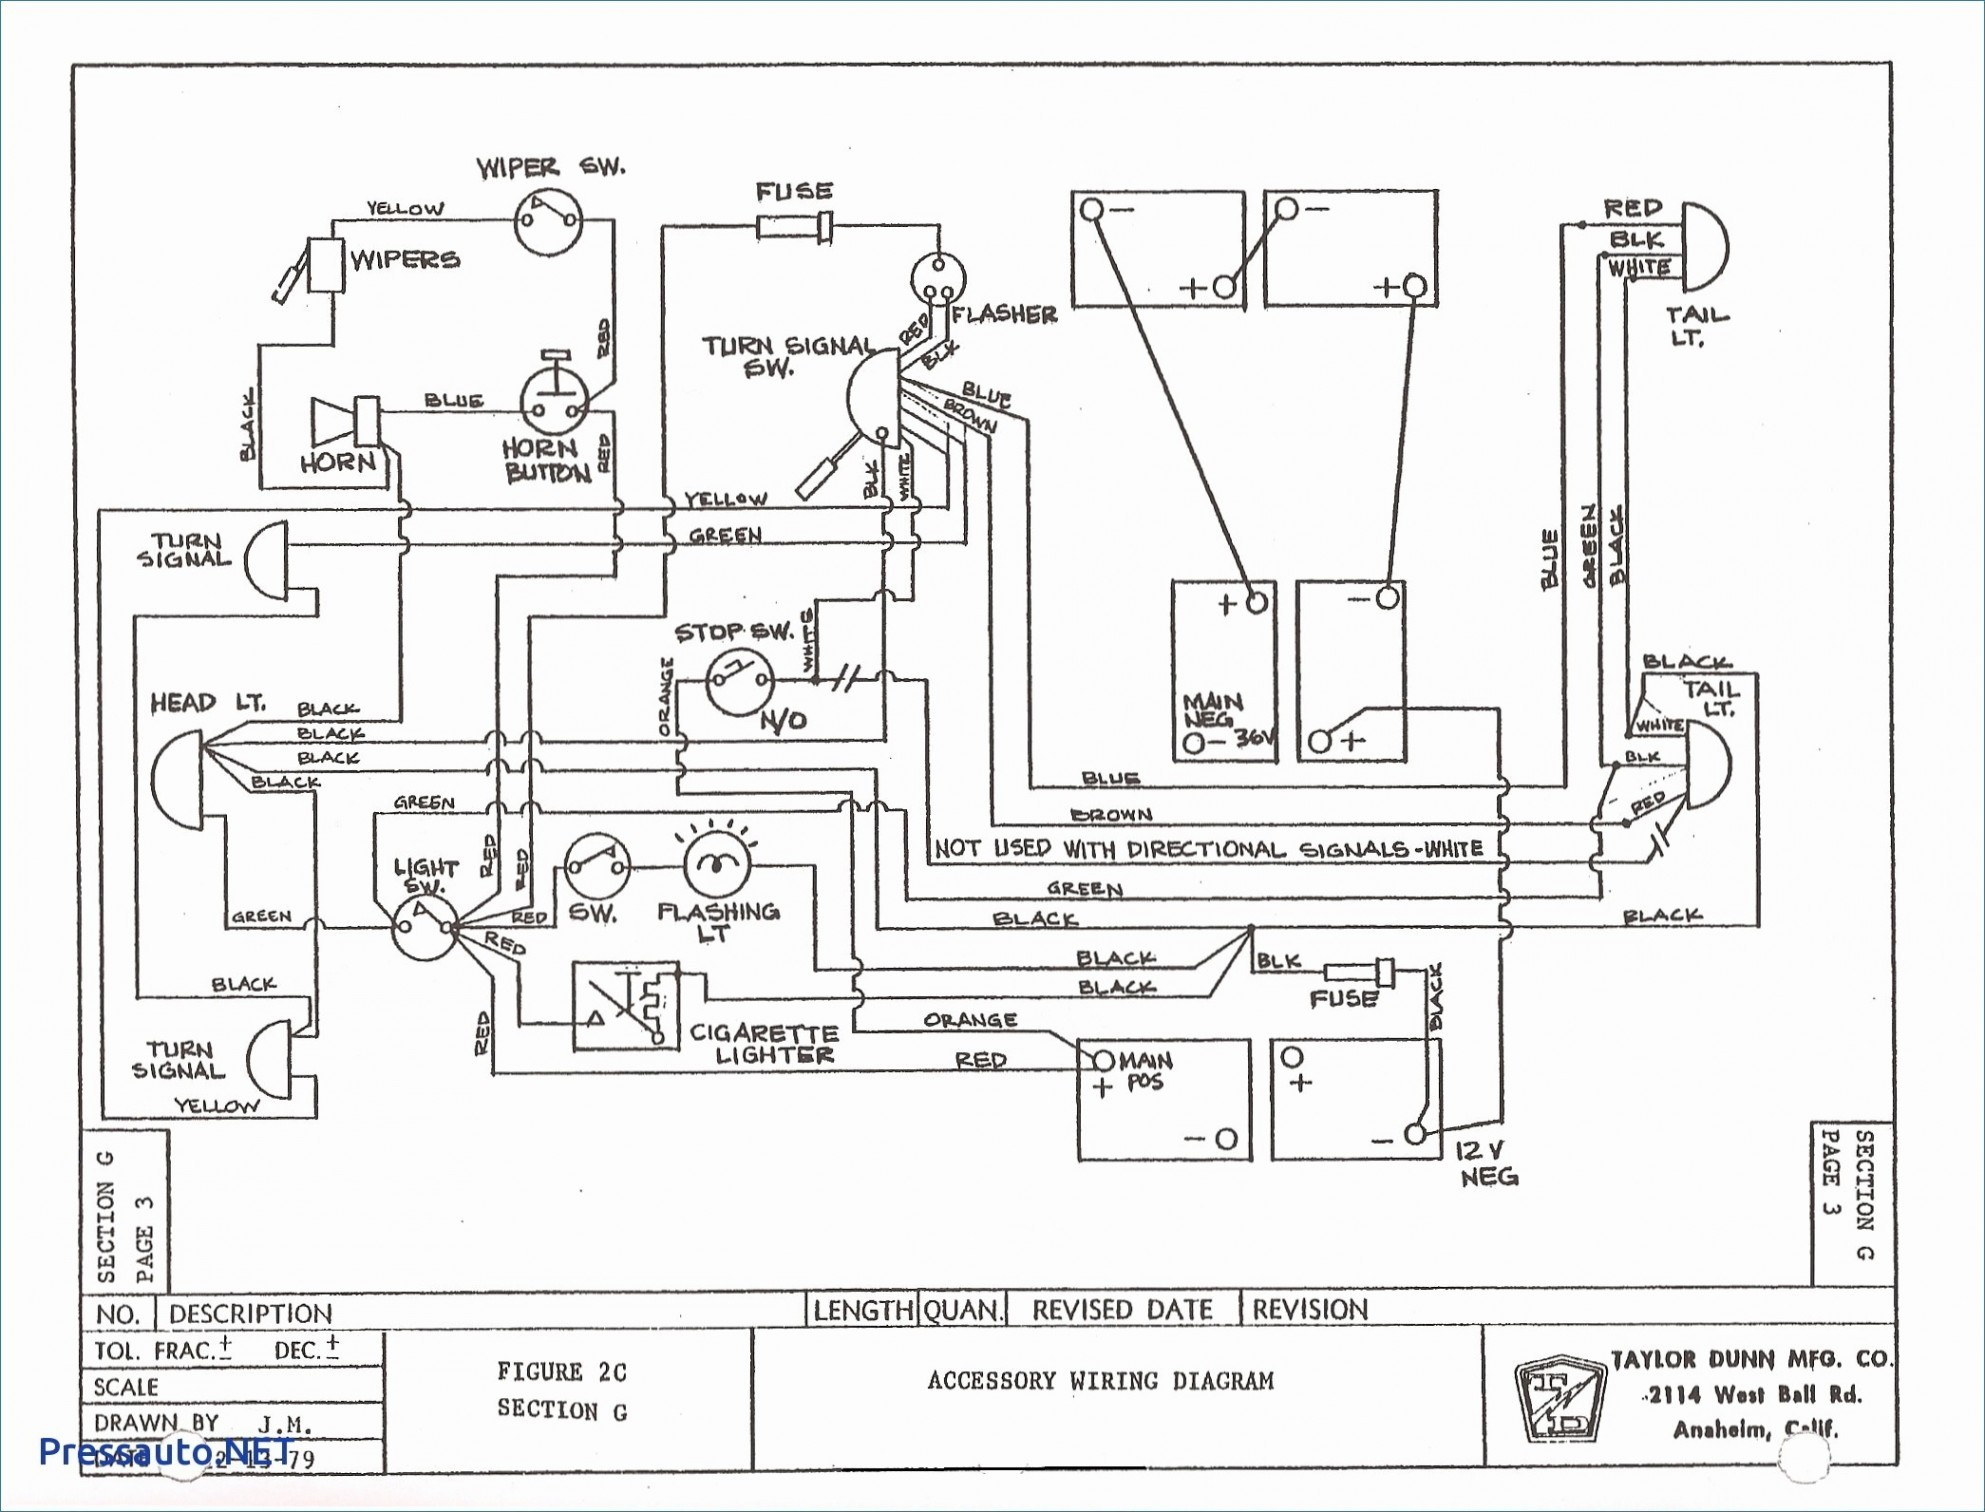 Club Car Parts Diagram Front End Mercedes Benz Parts Diagram – Wiring  Diagram to Her with Vintage